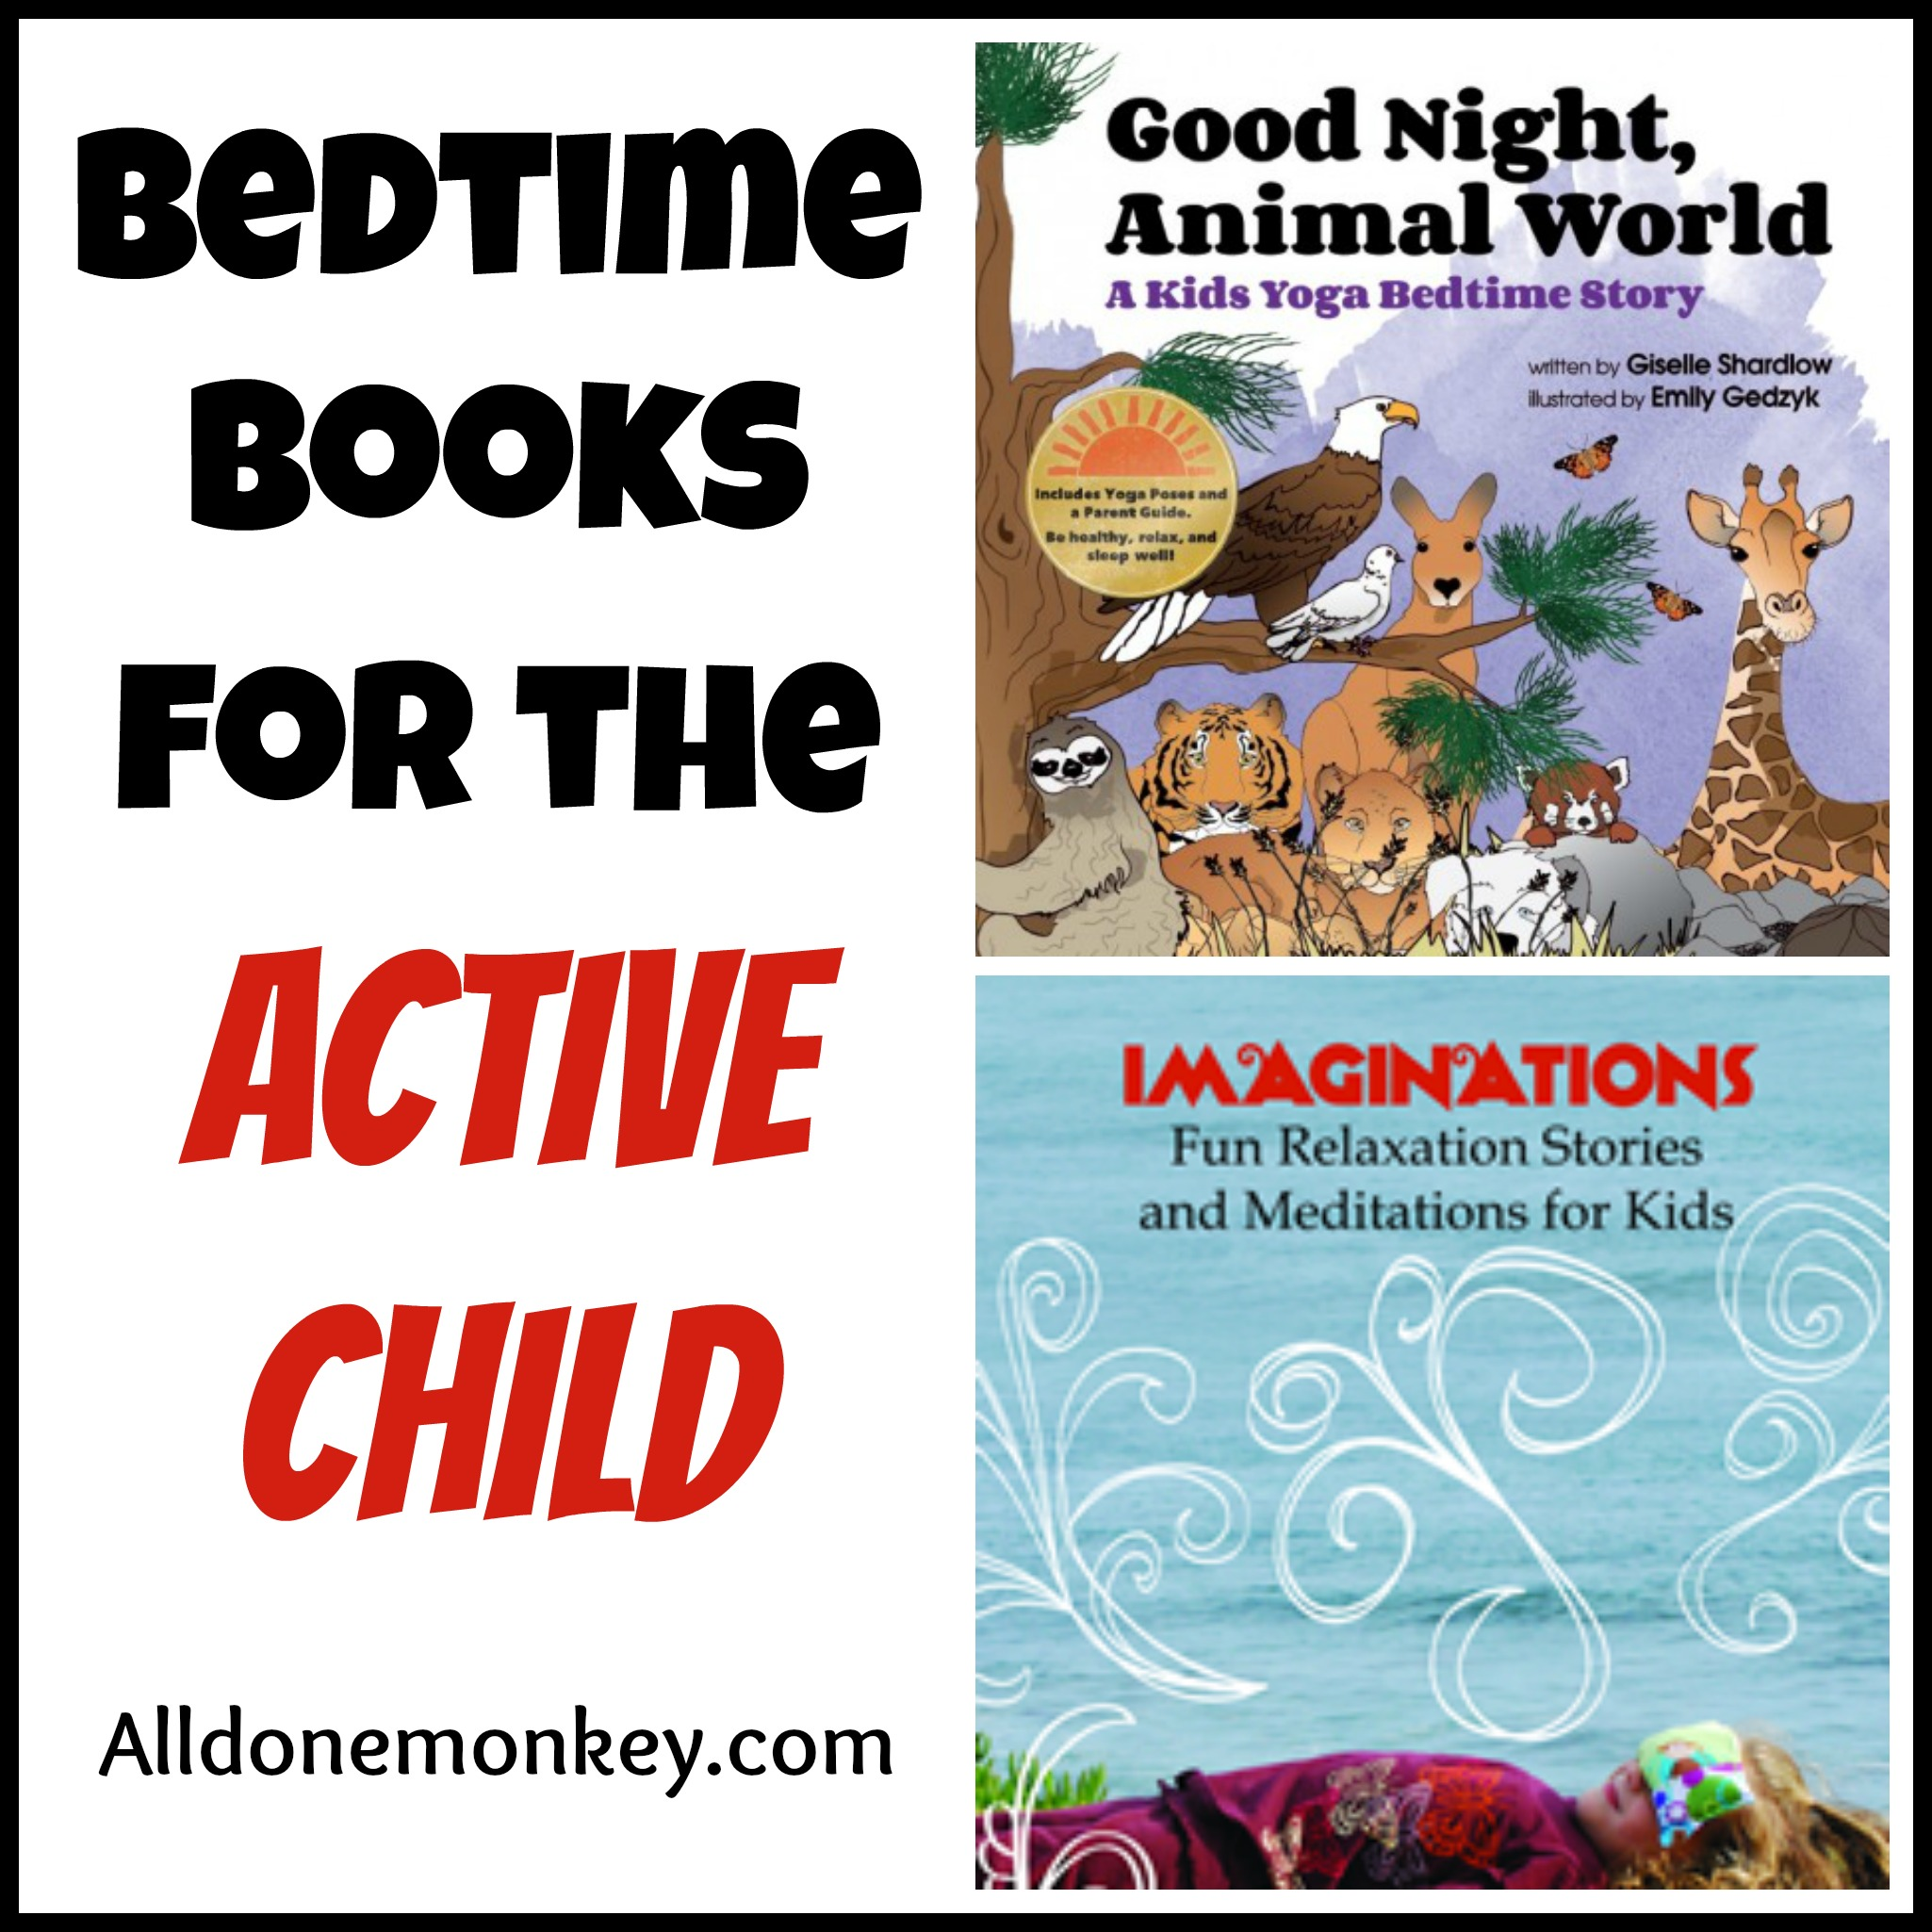 Bedtime Books for the Active Child - All Done Monkey